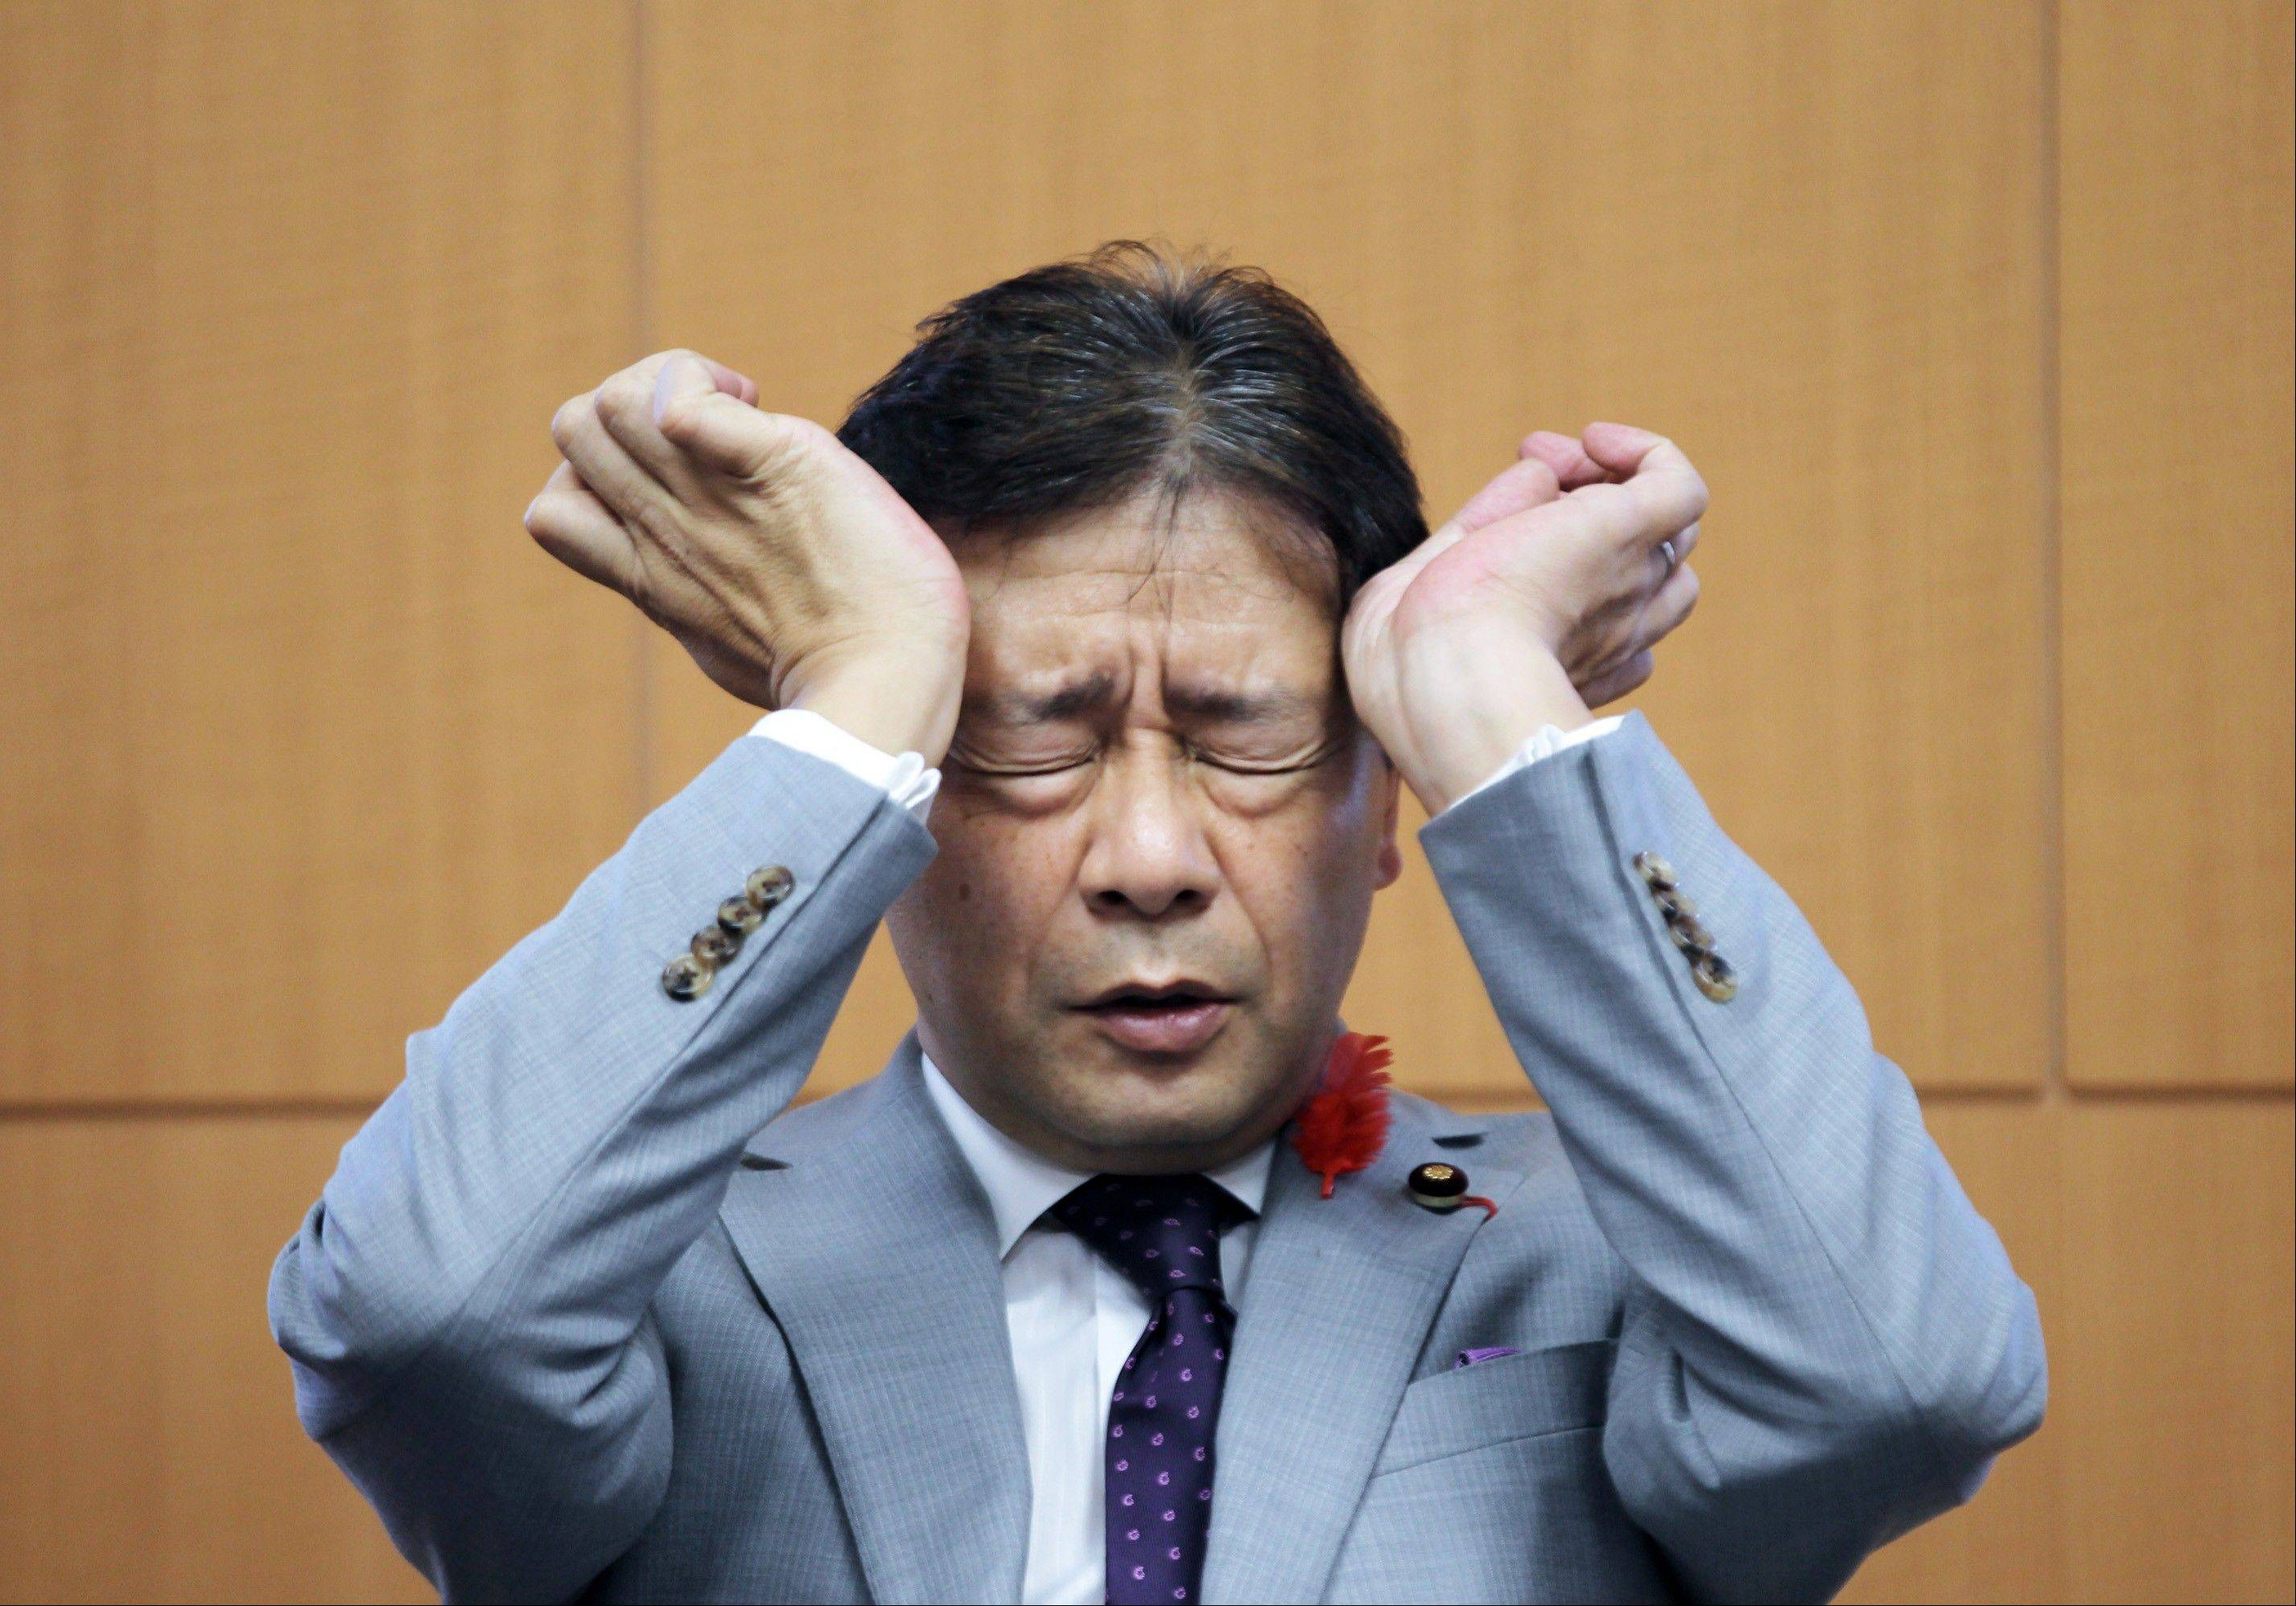 Ikko Nakatsuka, Japan's financial services minister, pauses during a group interview in Tokyo, Japan, on Friday, Oct. 5, 2012. Nakatsuka urged the country's bank lobby to determine whether its process for setting the benchmark yen lending rate should be revamped. Photographer: